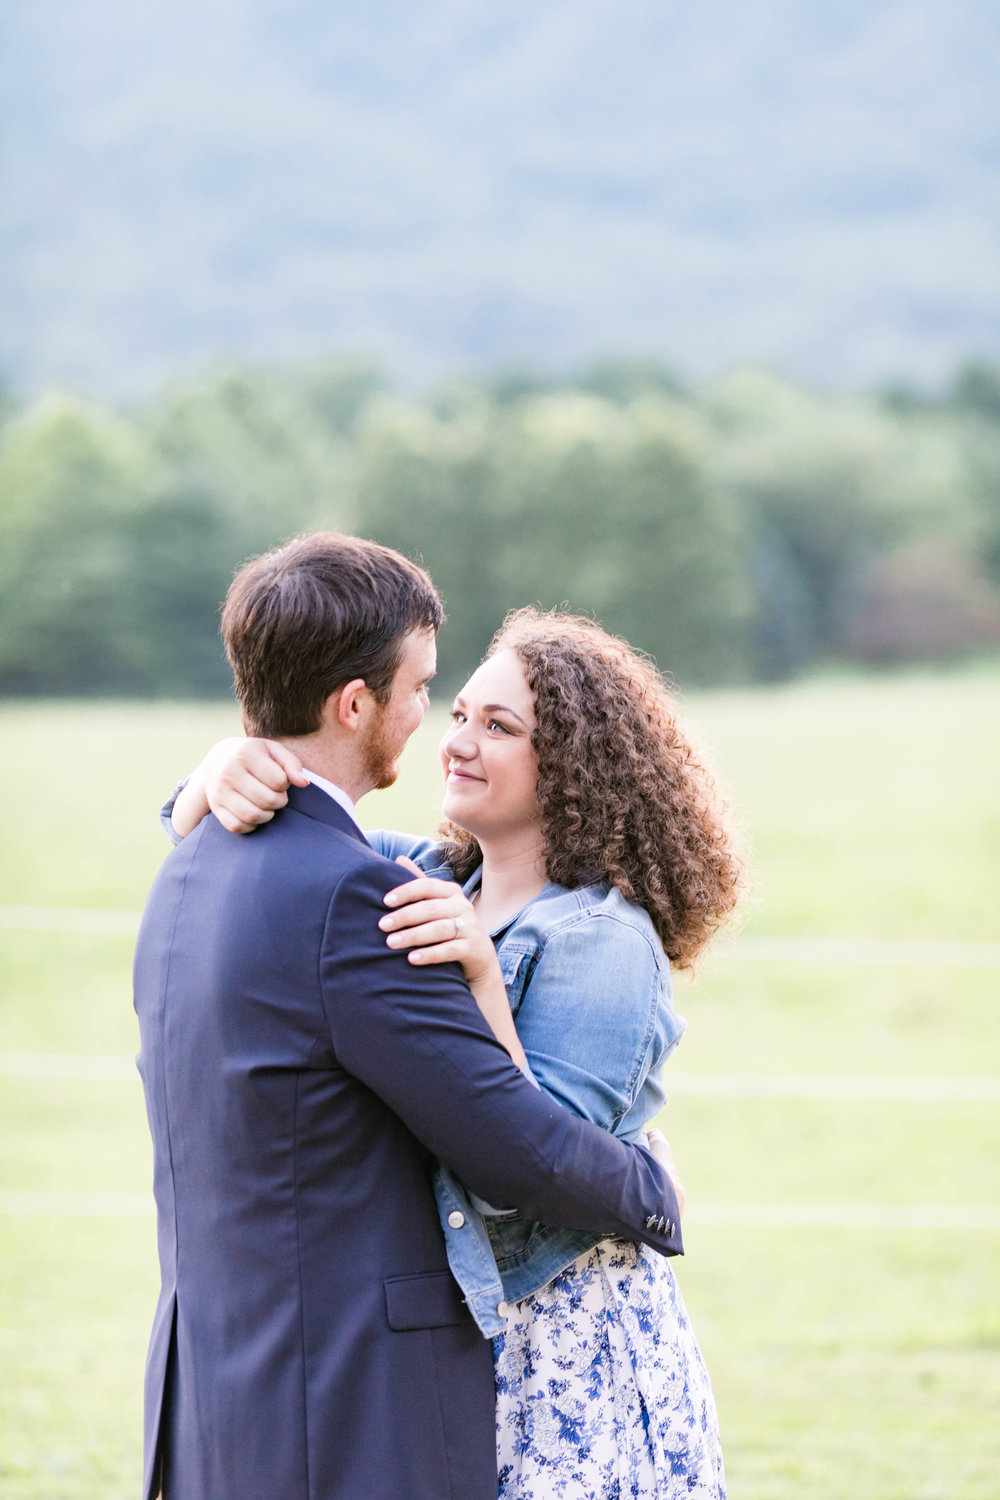 East Tennessee engagement session, wedding photographer, portrait photography, bride and groom, Doe River Gorge, wedding venue, Tri Cities wedding photographer, Johnson City photography